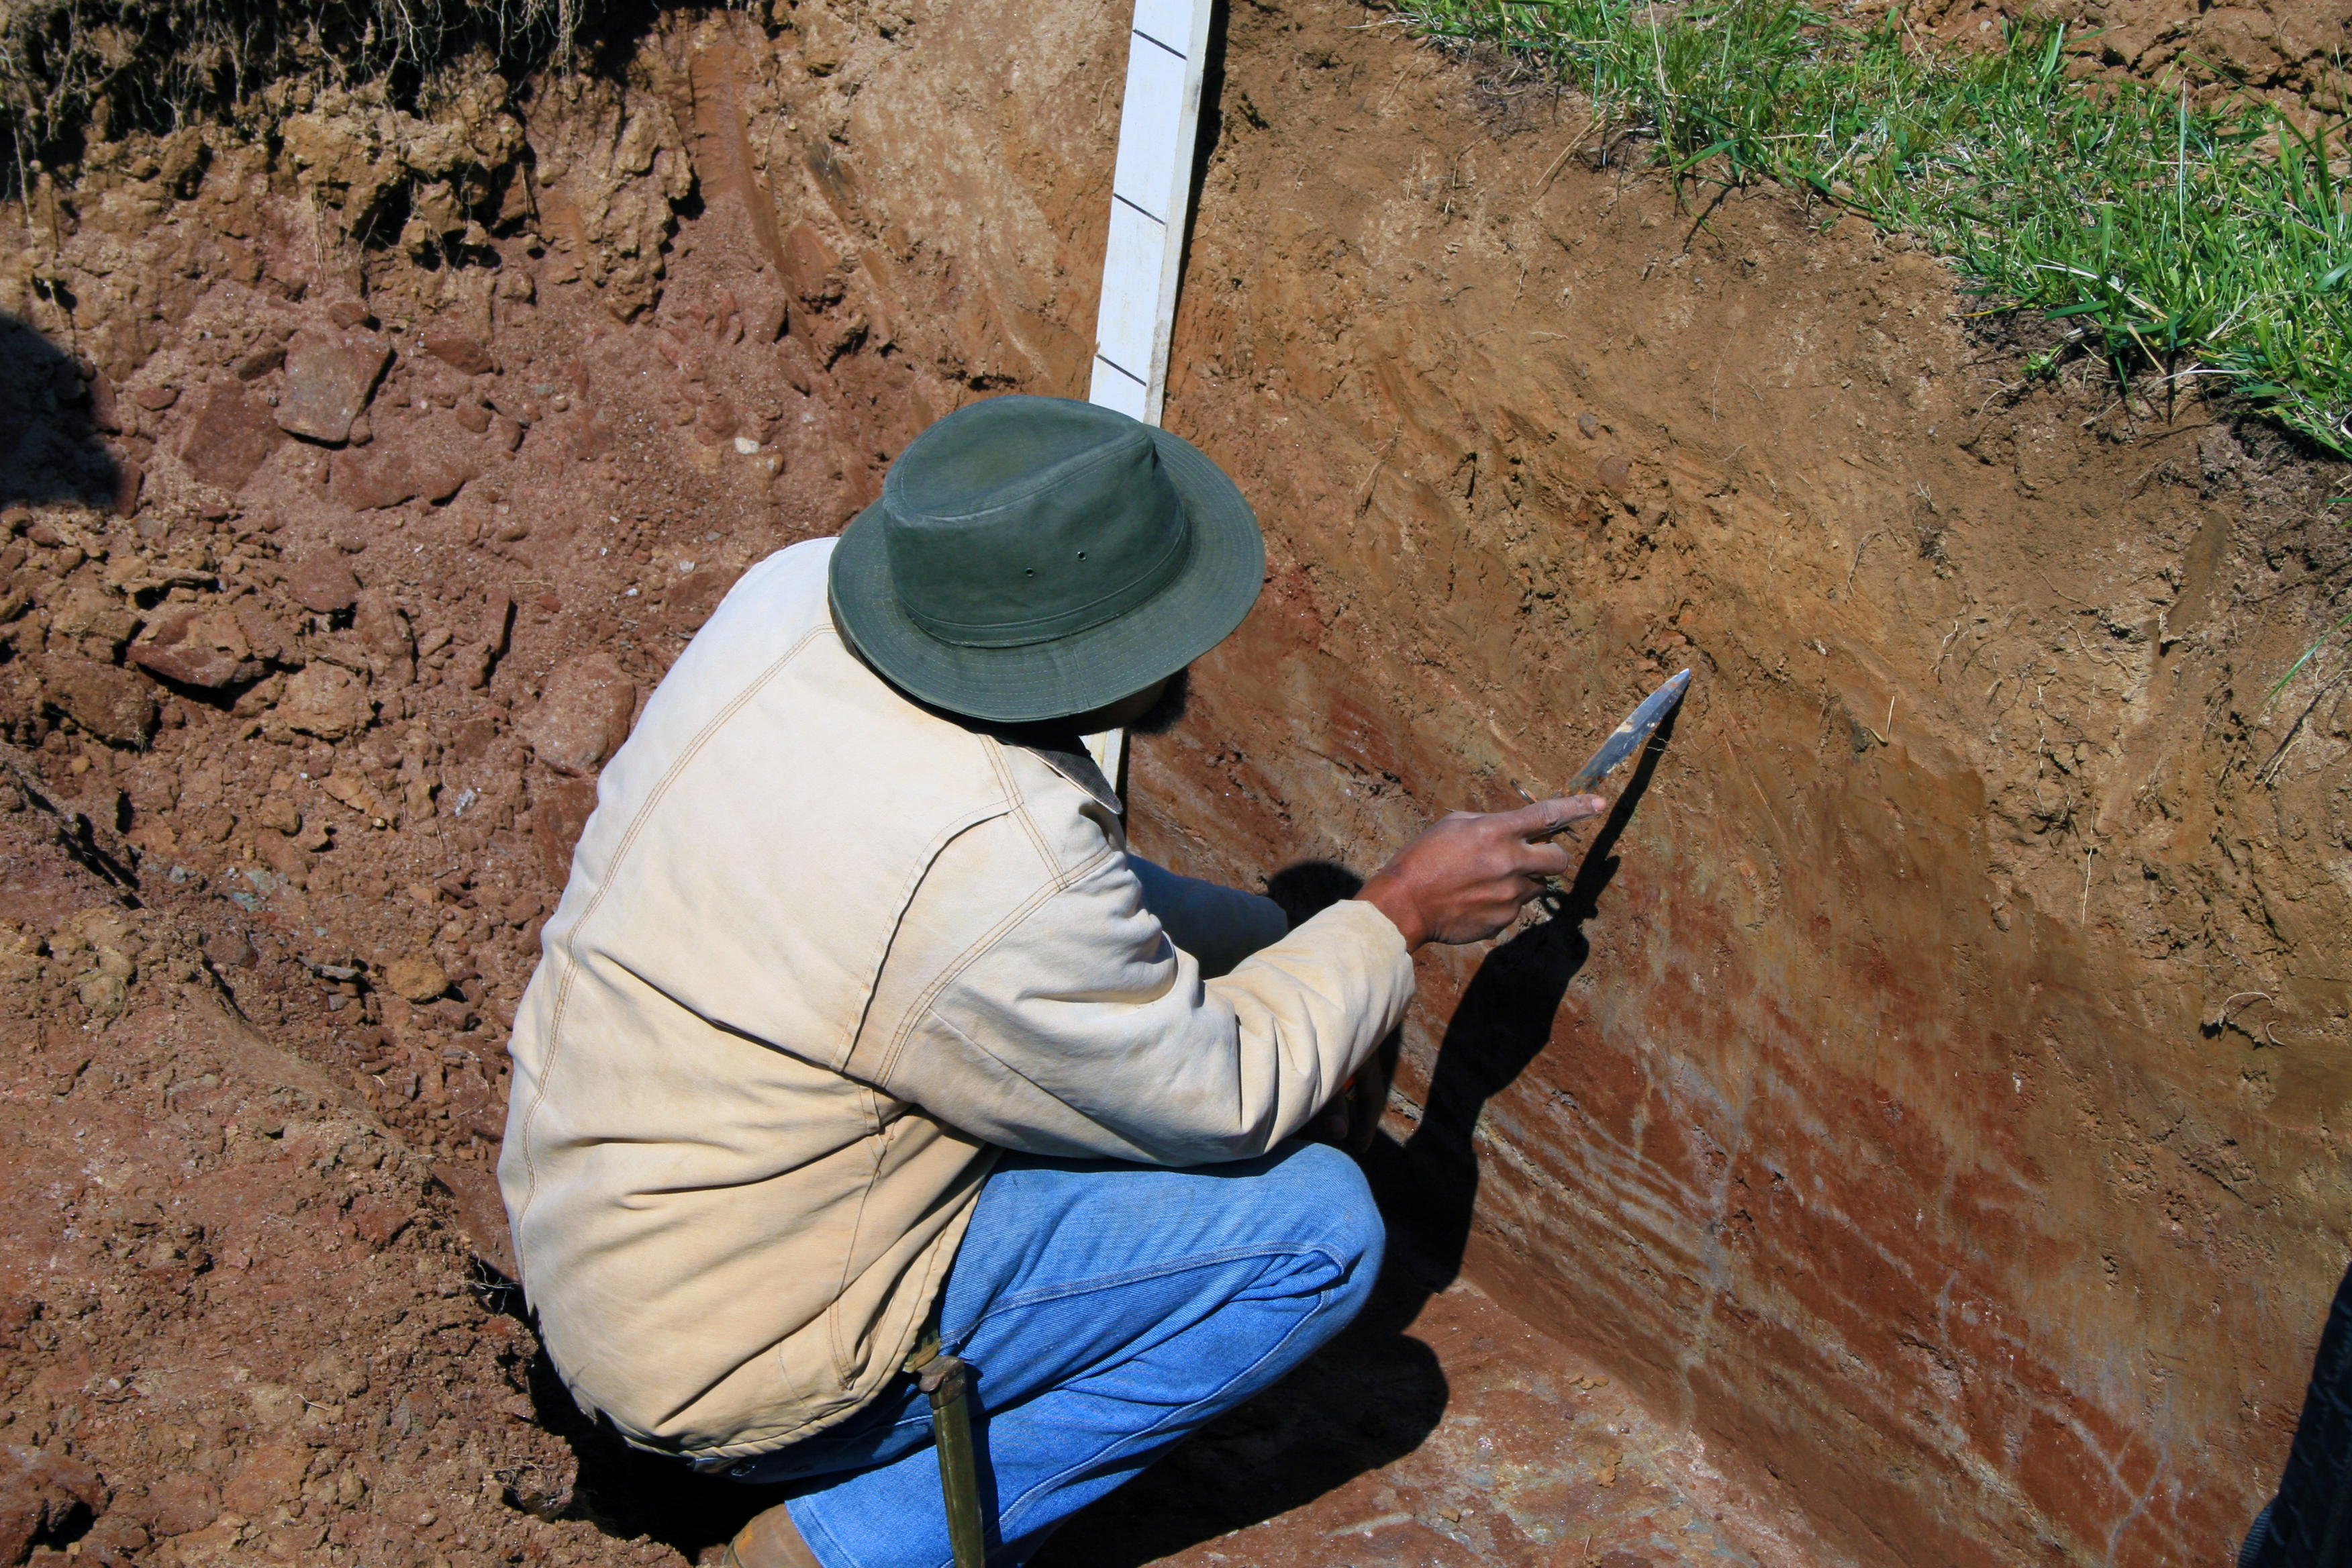 Soil Survey photo (man with hat and equipment